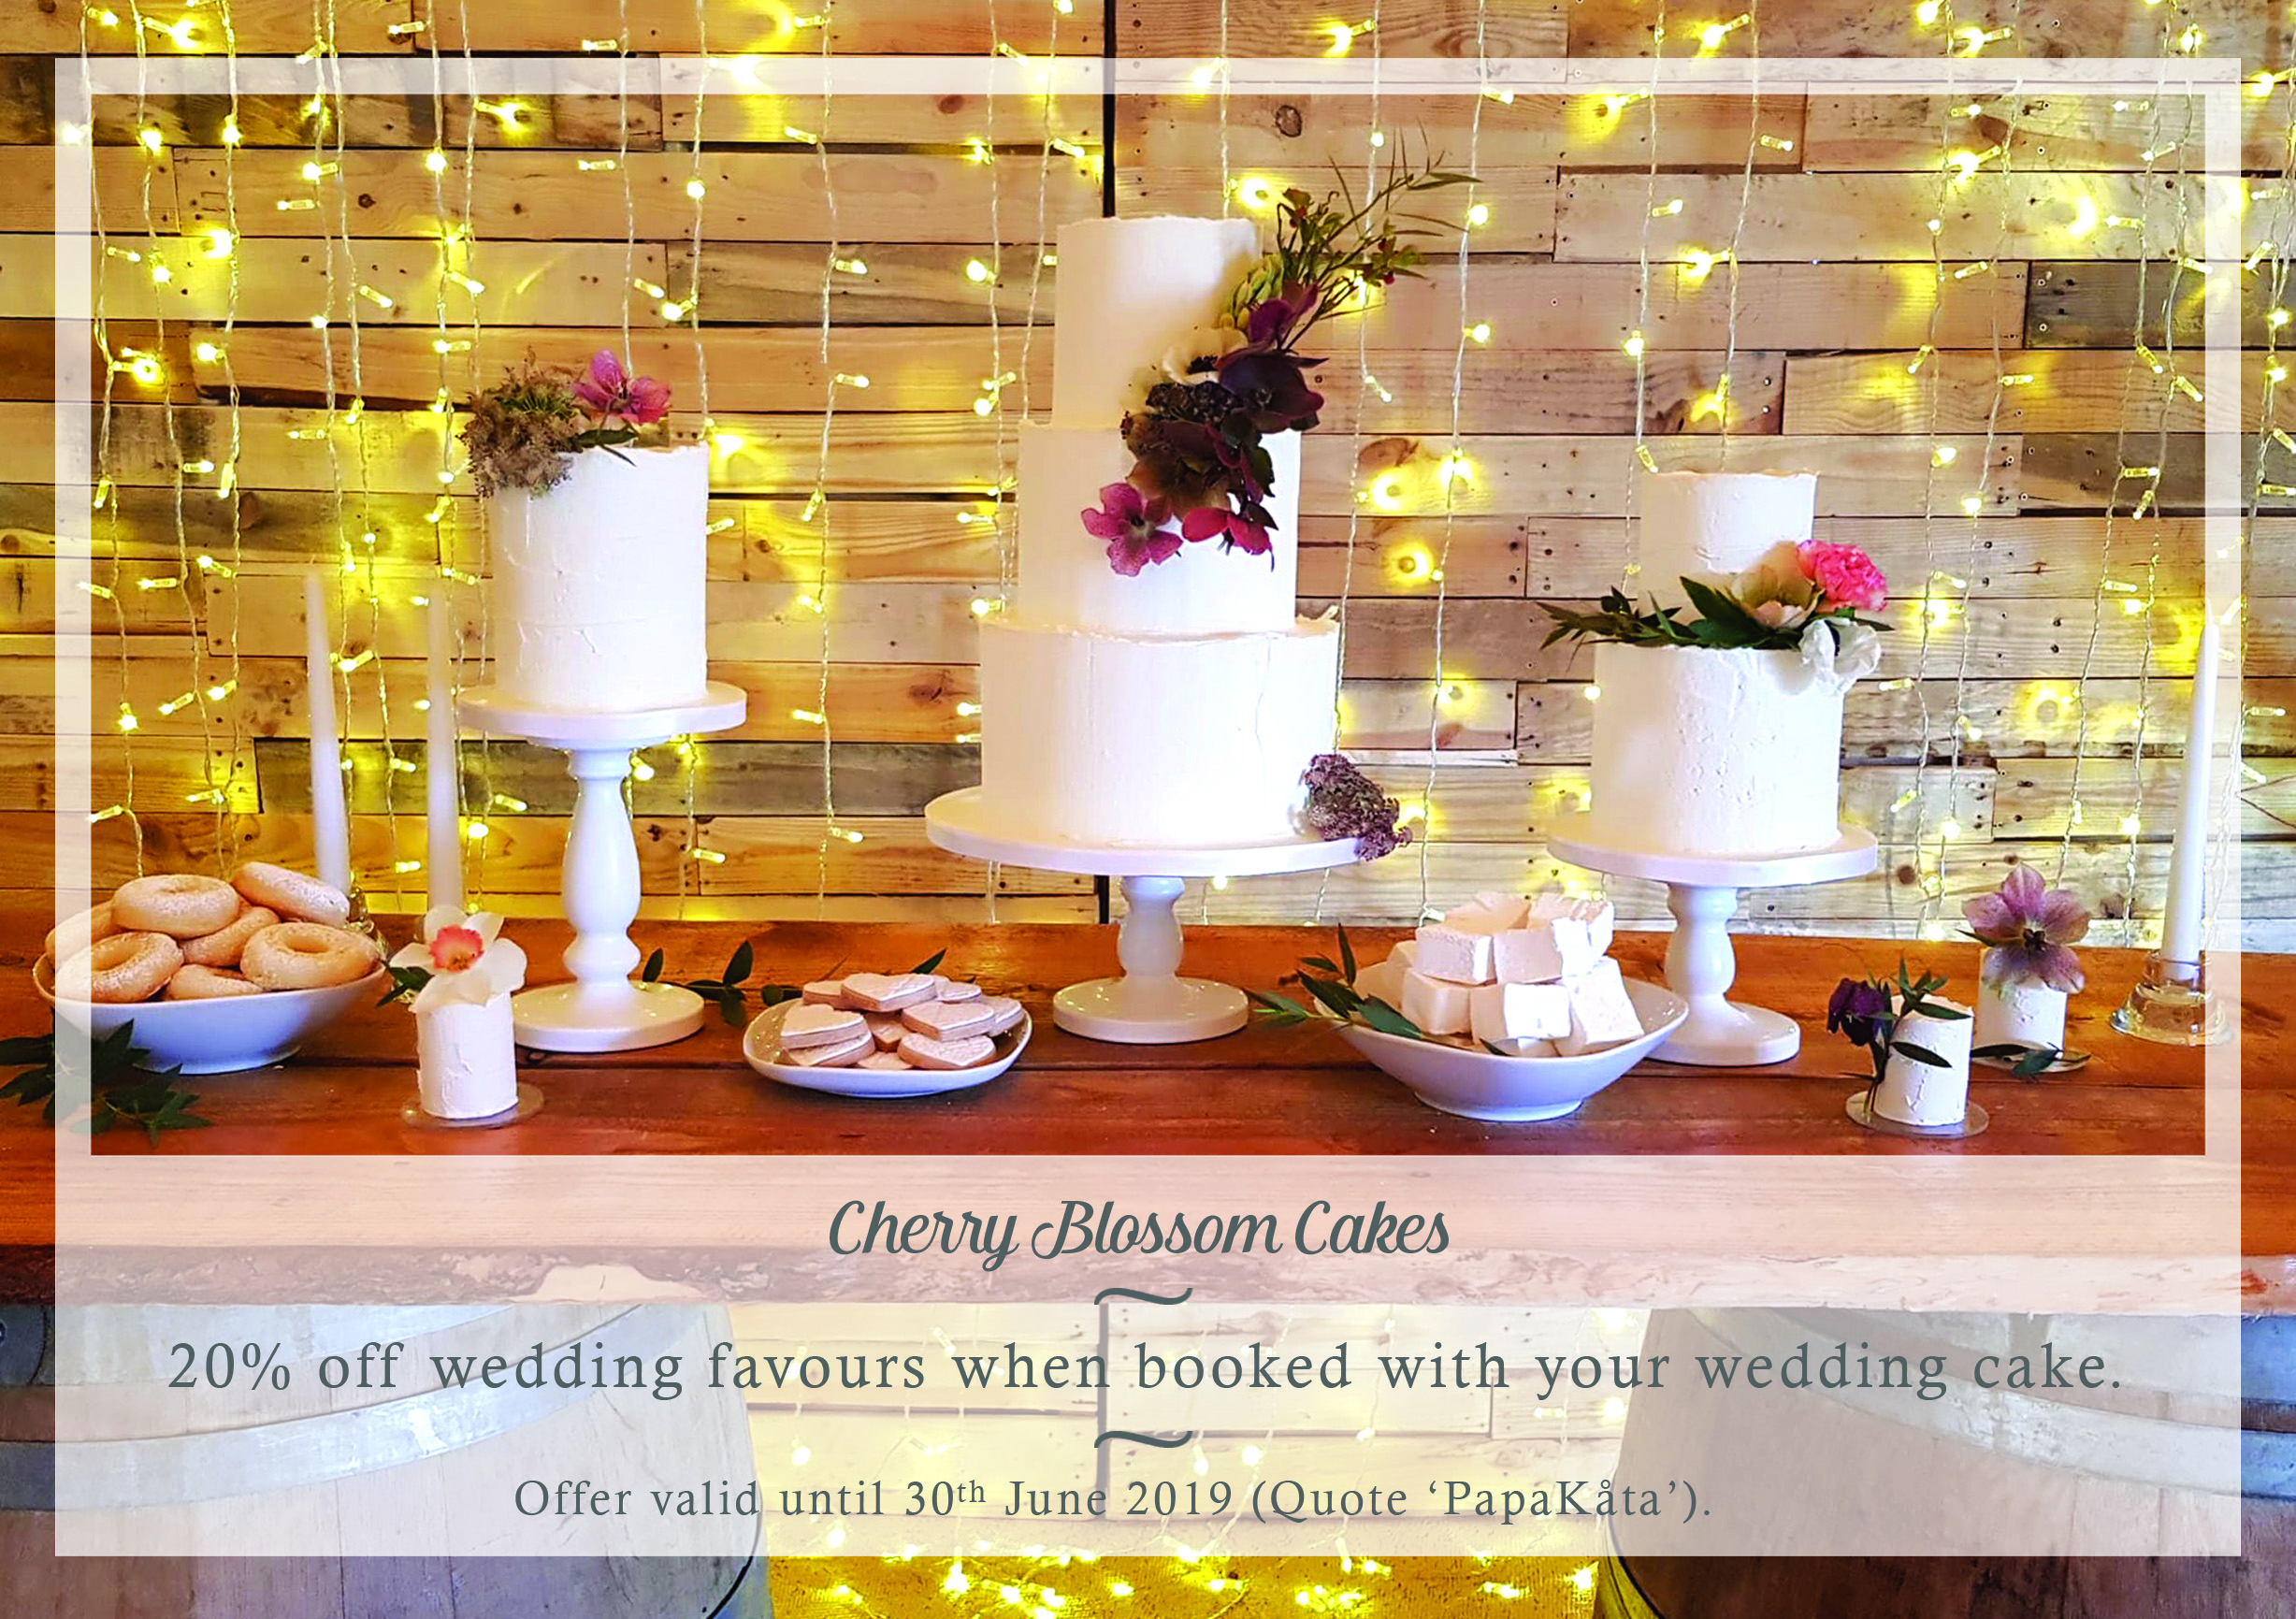 Cherry Blossom Cakes your exclusive PapaKata supplier discount